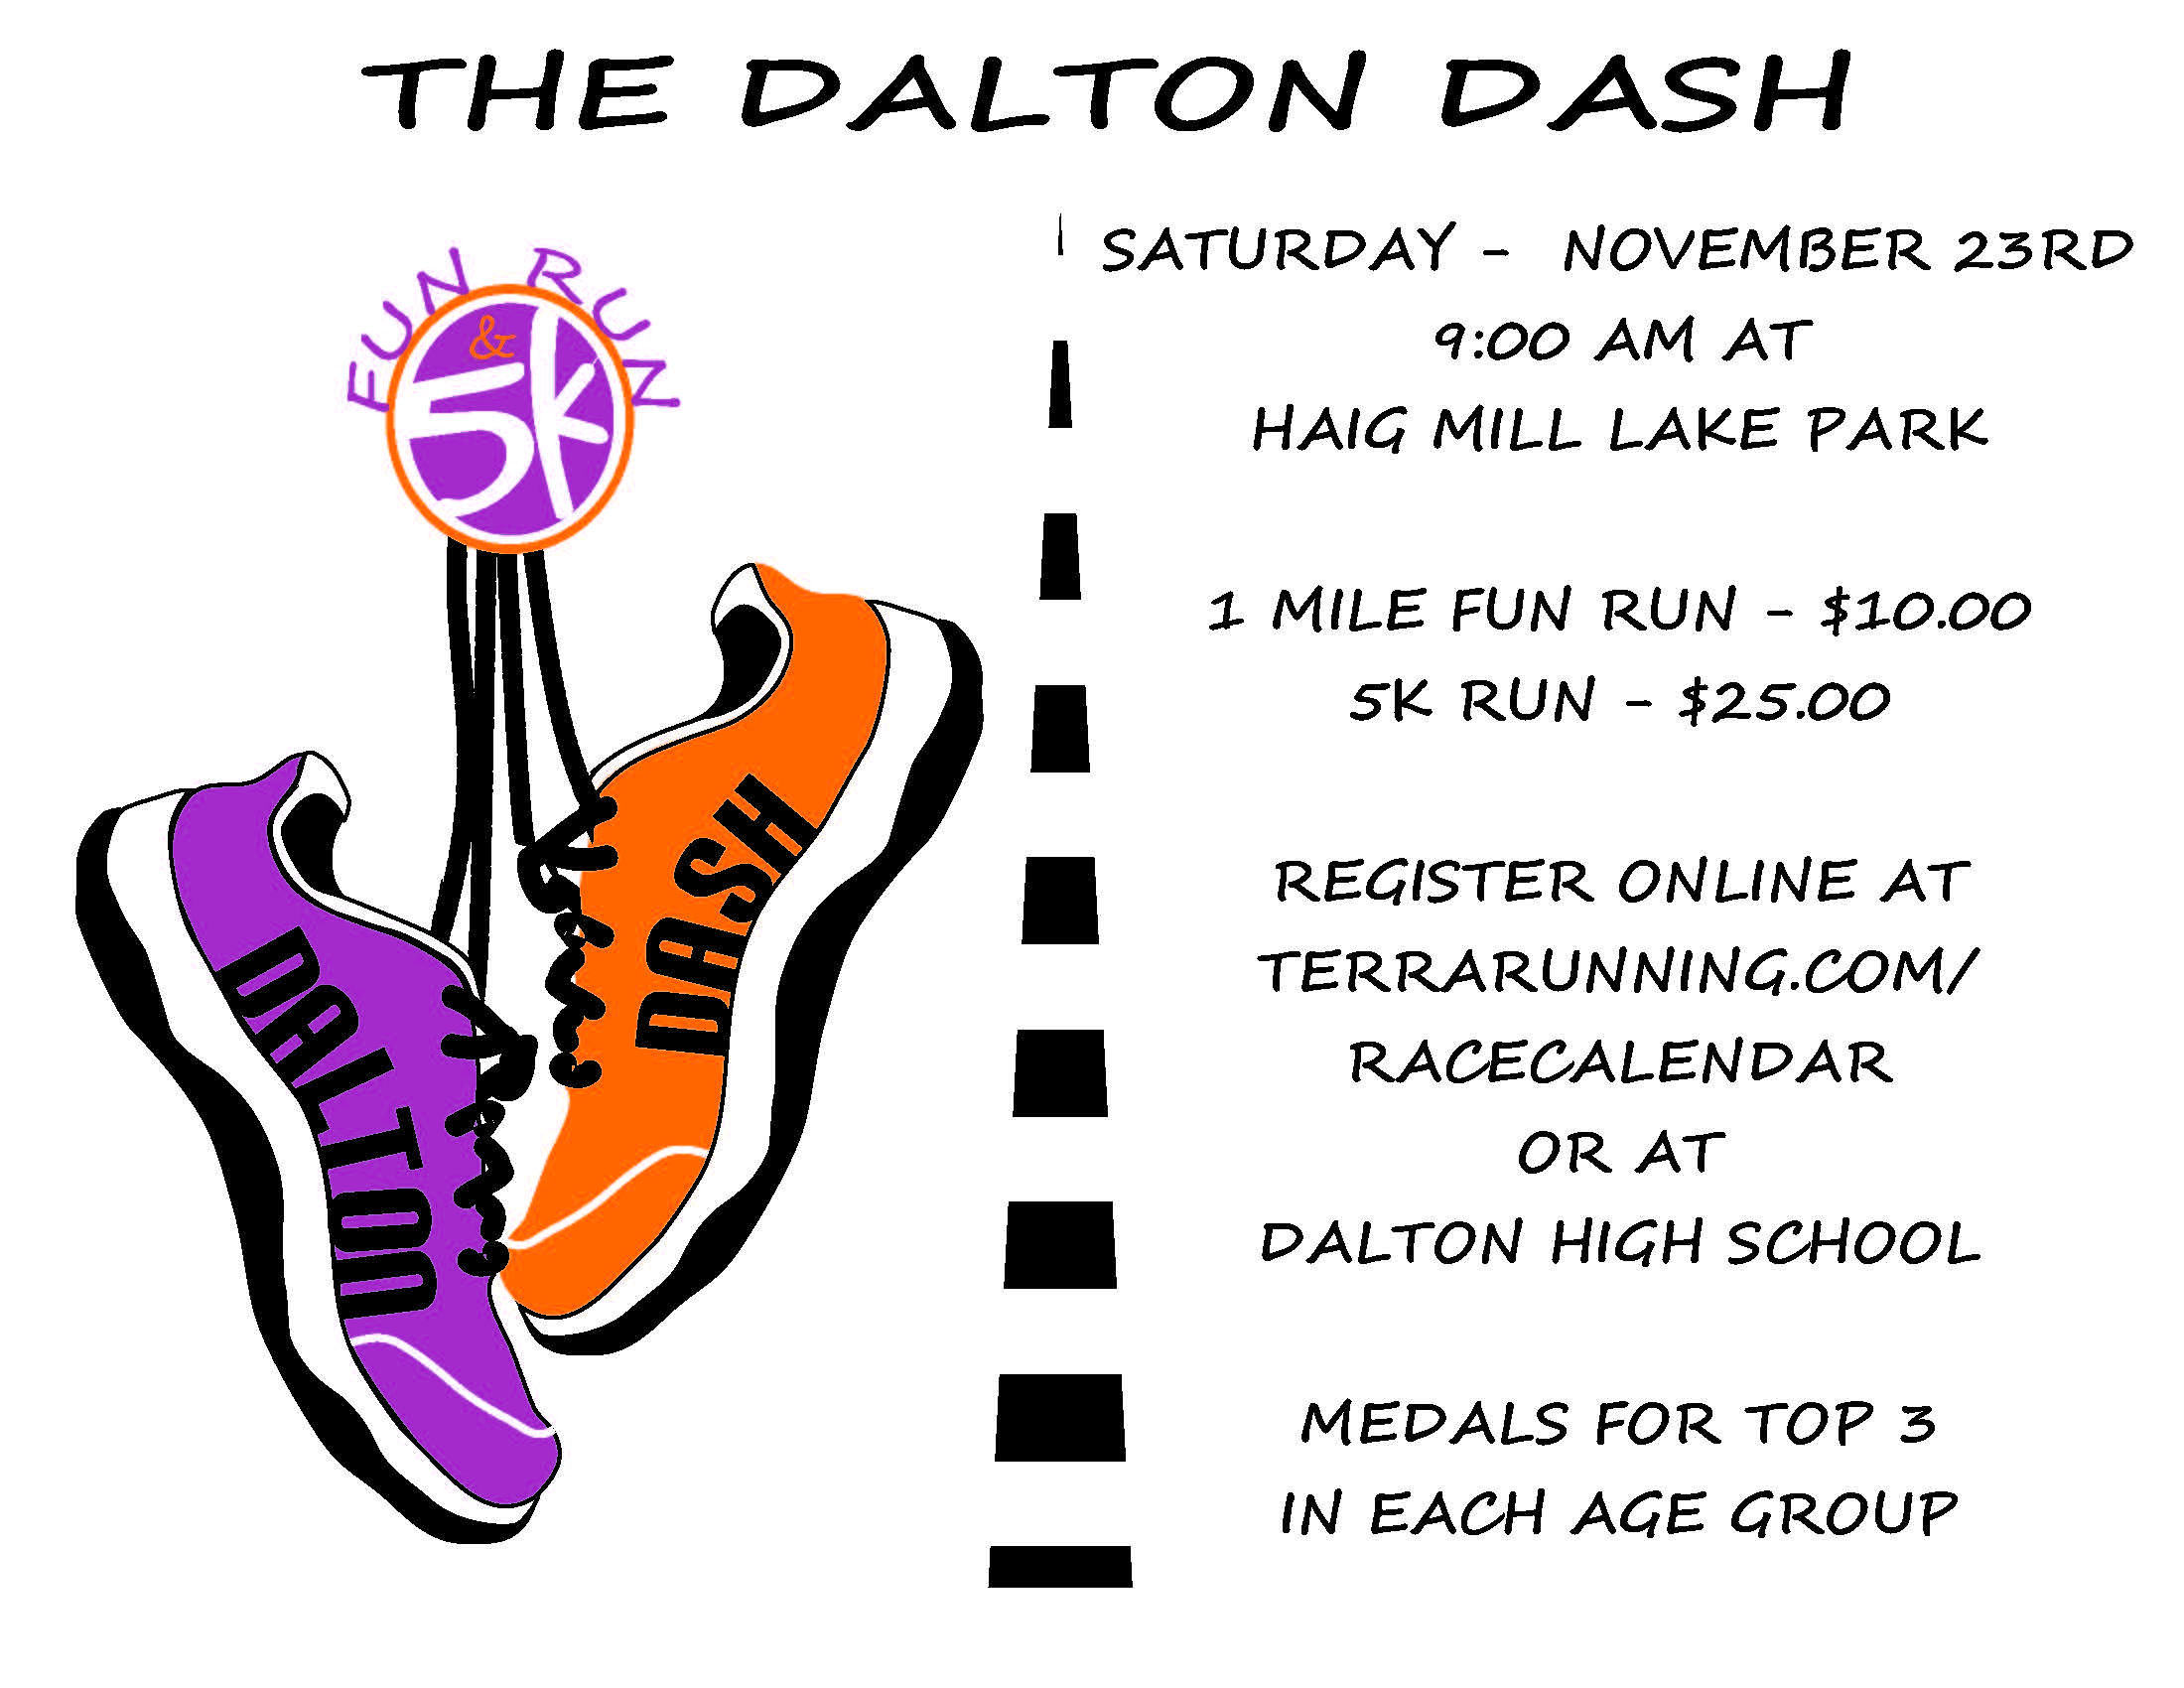 The Dalton Dash graphic